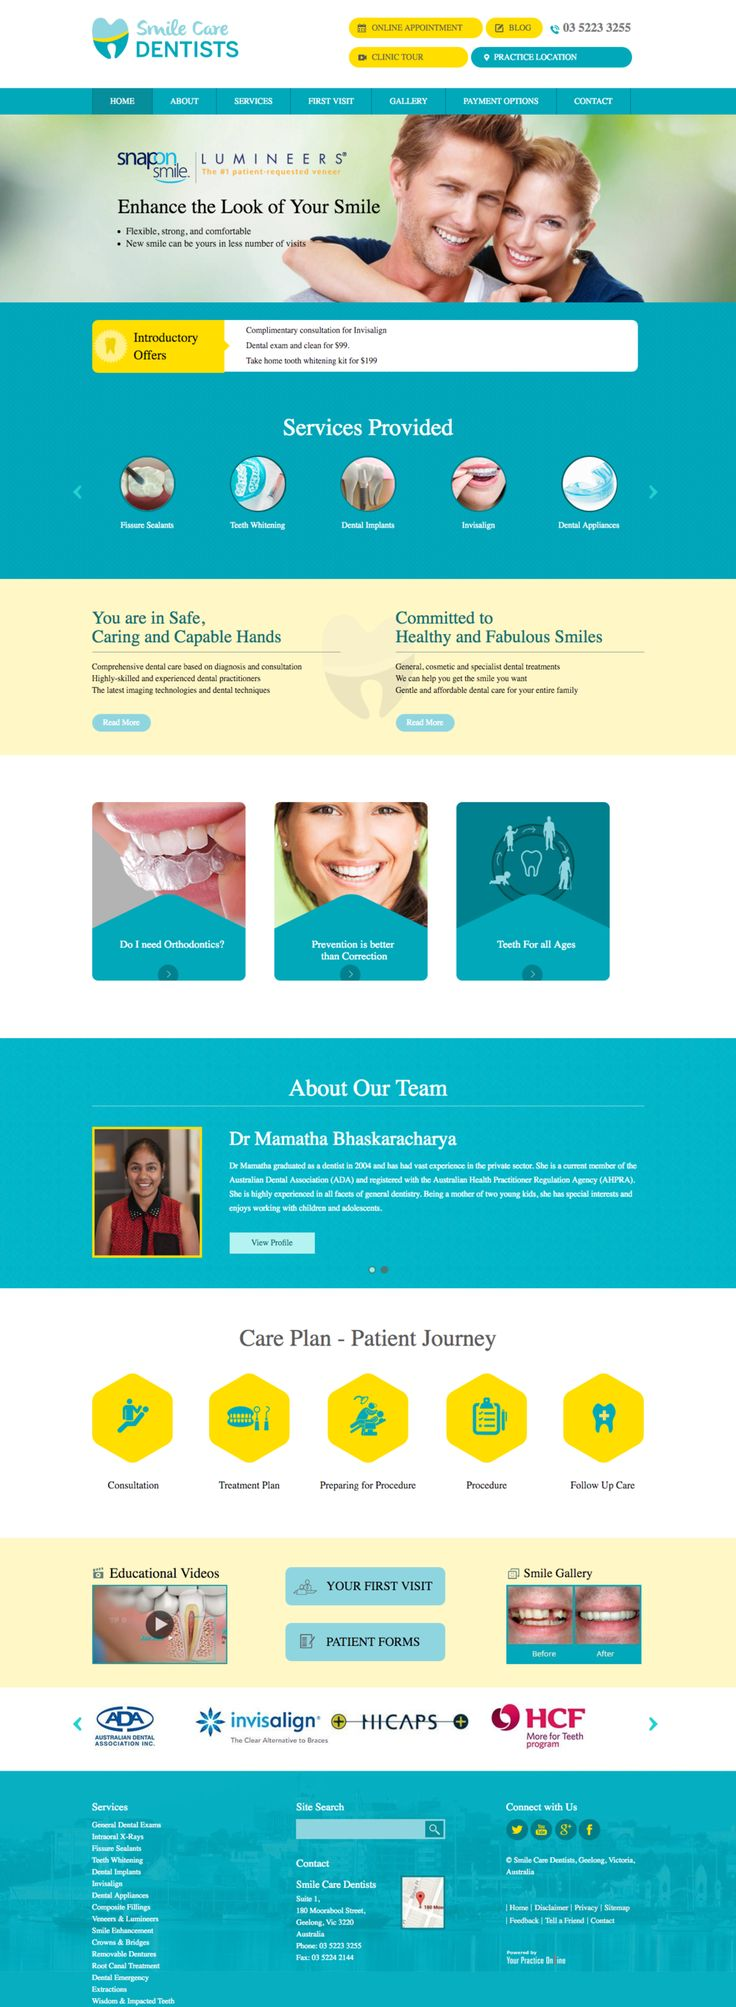 Our website design for a Dental Clinic in Geelong.  #DentalWebsiteDesign #SEOWebsiteforDentists #WebsiteDesignforDentalClinic